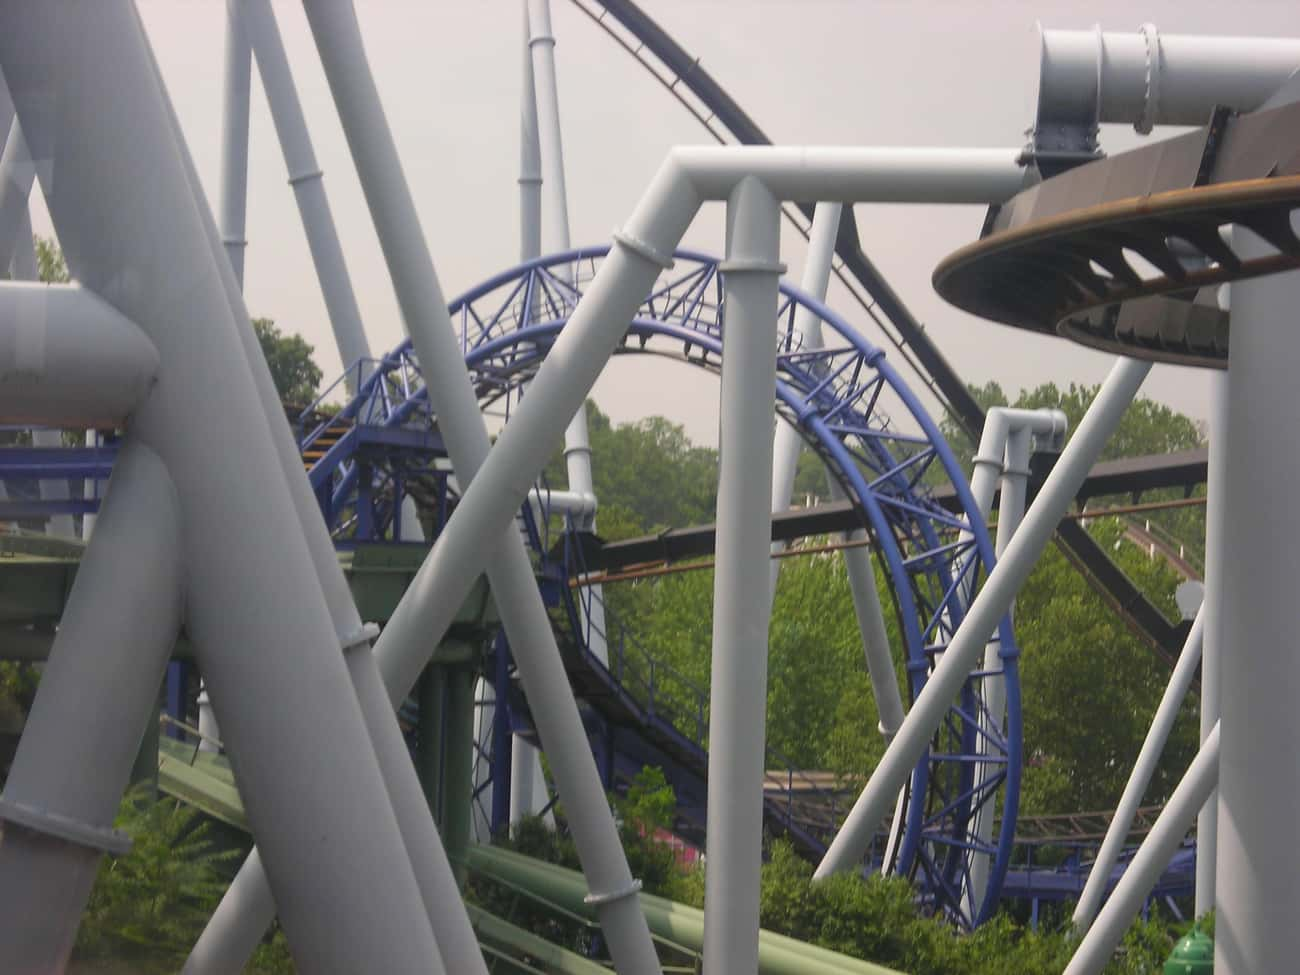 Hersheypark is listed (or ranked) 3 on the list The Best Amusement Parks In America